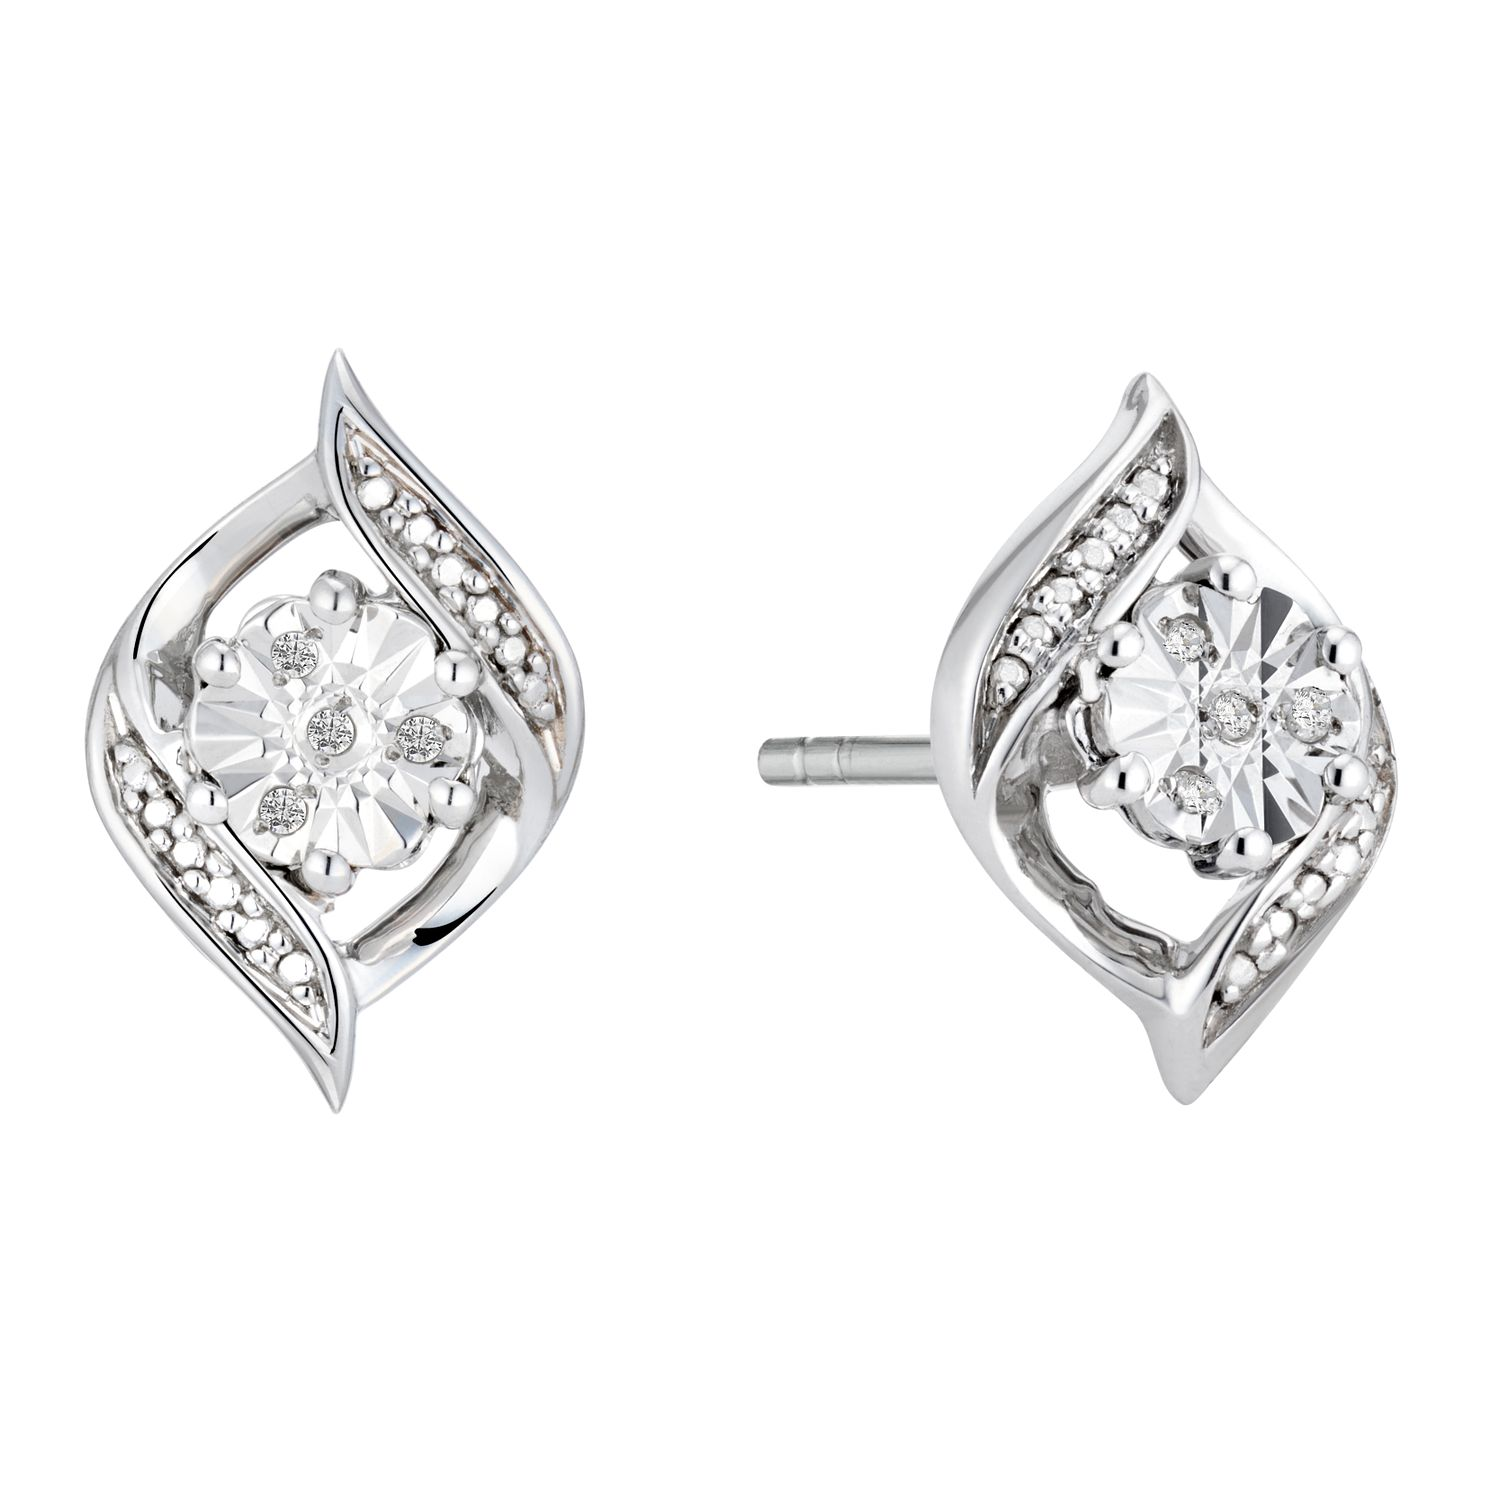 Sterling Silver Diamond Swirl Stud Earrings - Product number 3963926